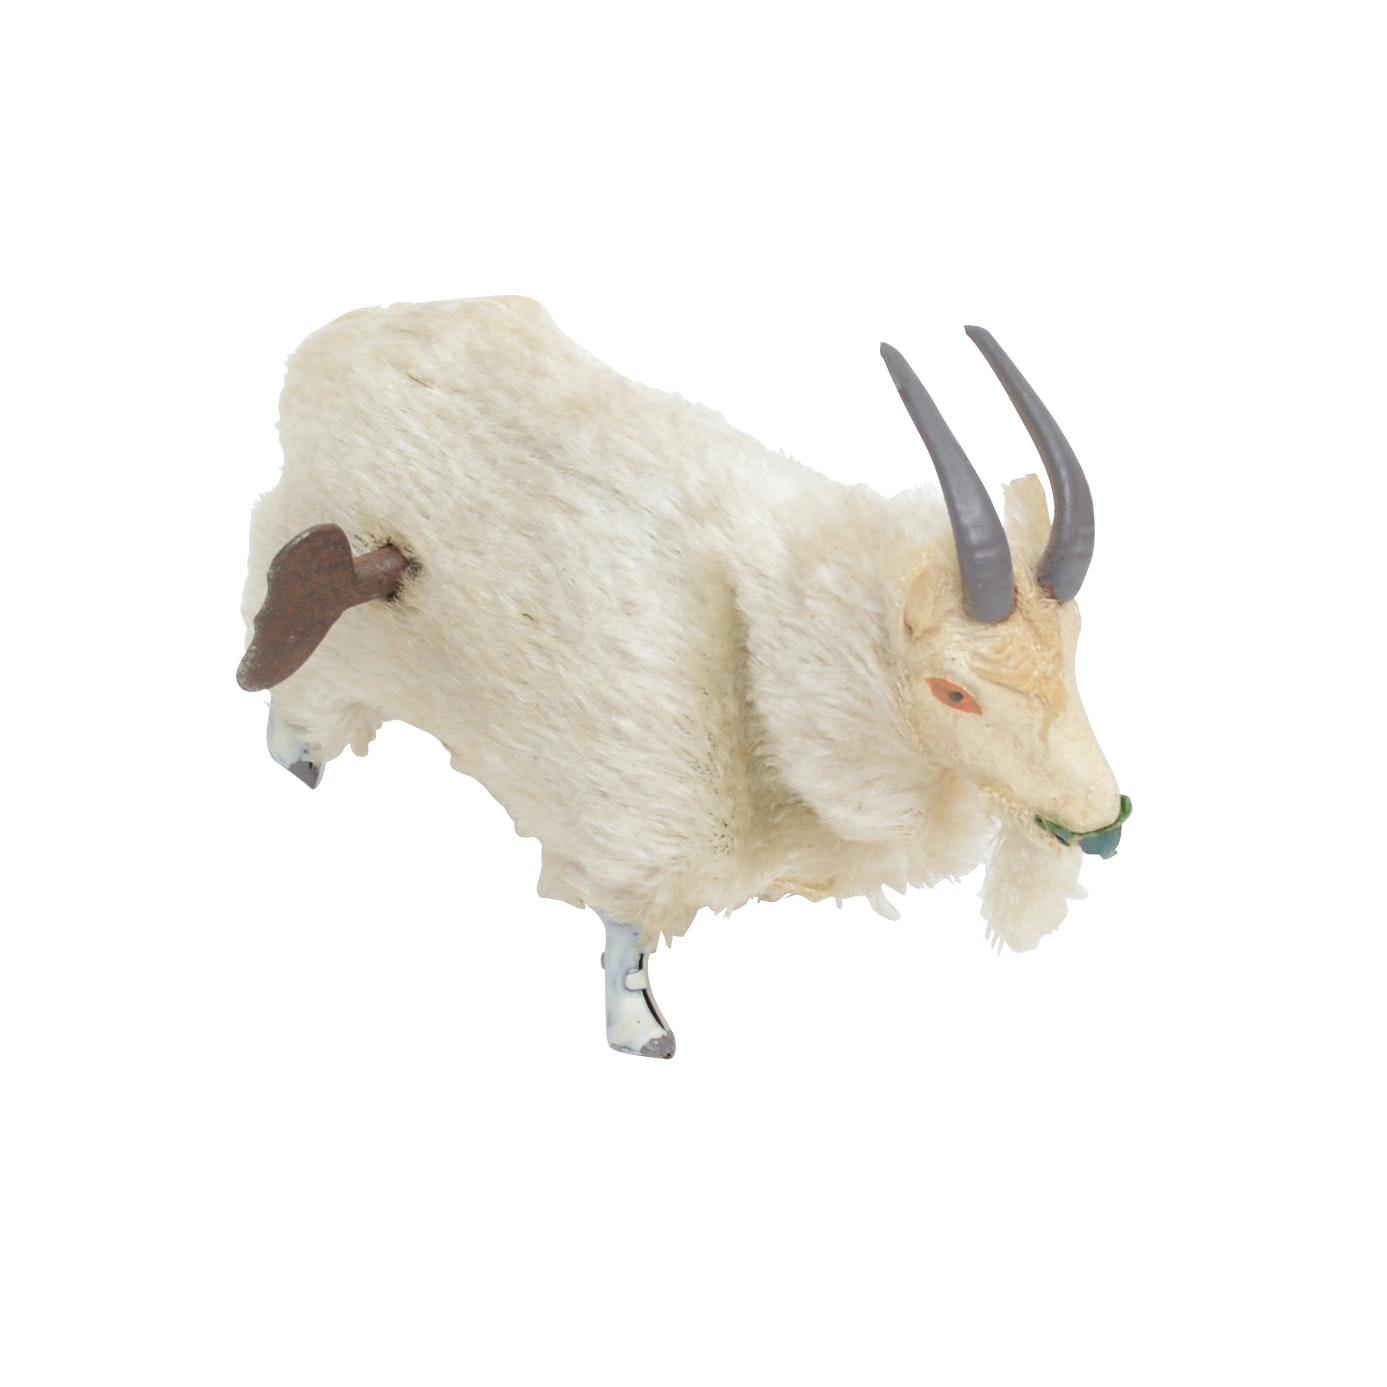 Mohair Wind-Up Goat Toy